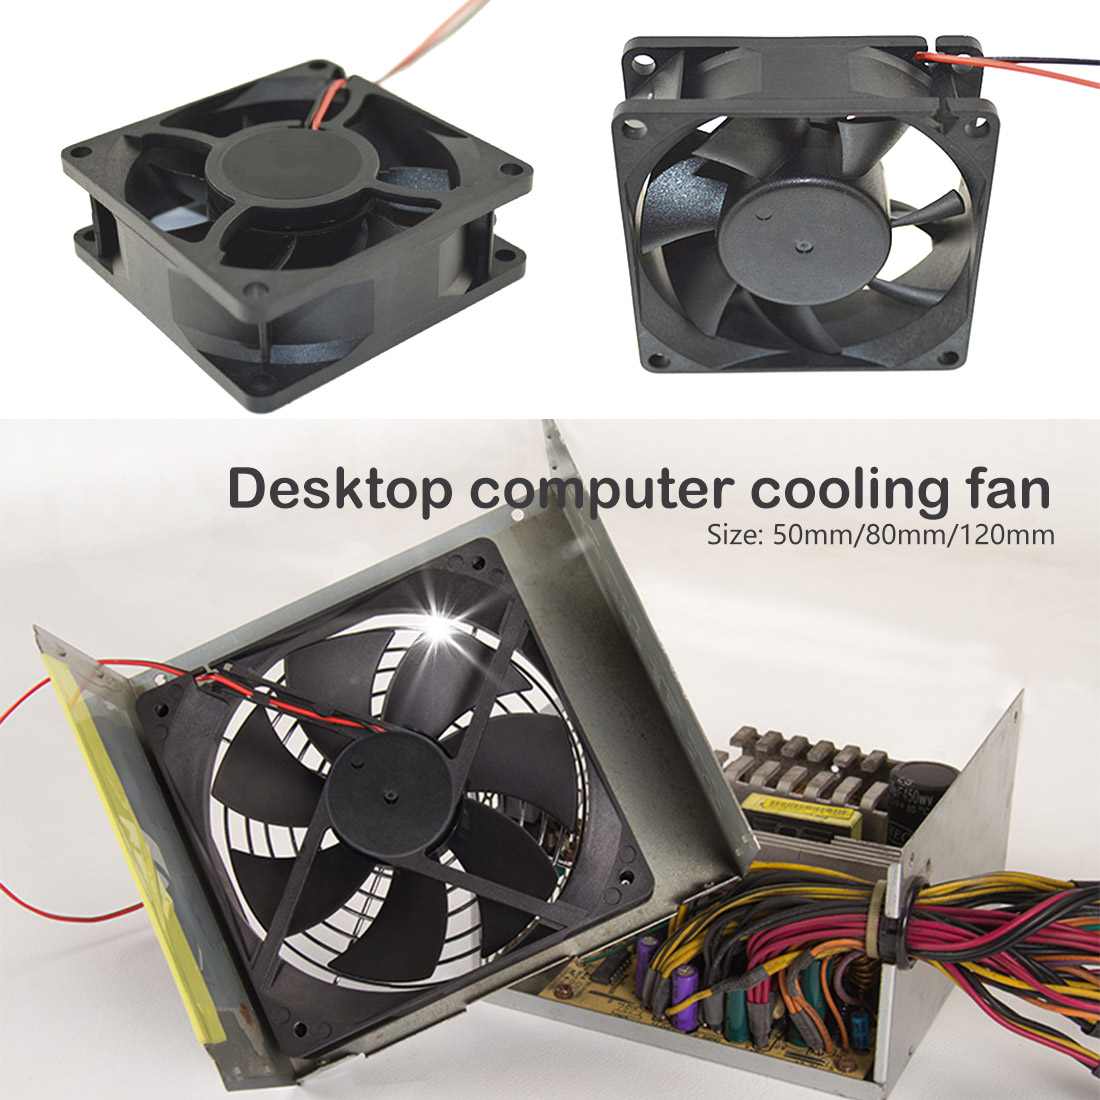 12V DC fan <font><b>50</b></font> 80 120 mm 2 Pin Connector Cooling Fan for Computer Case CPU <font><b>Cooler</b></font> Radiator Computer Accessories CPU Cooling Fans image